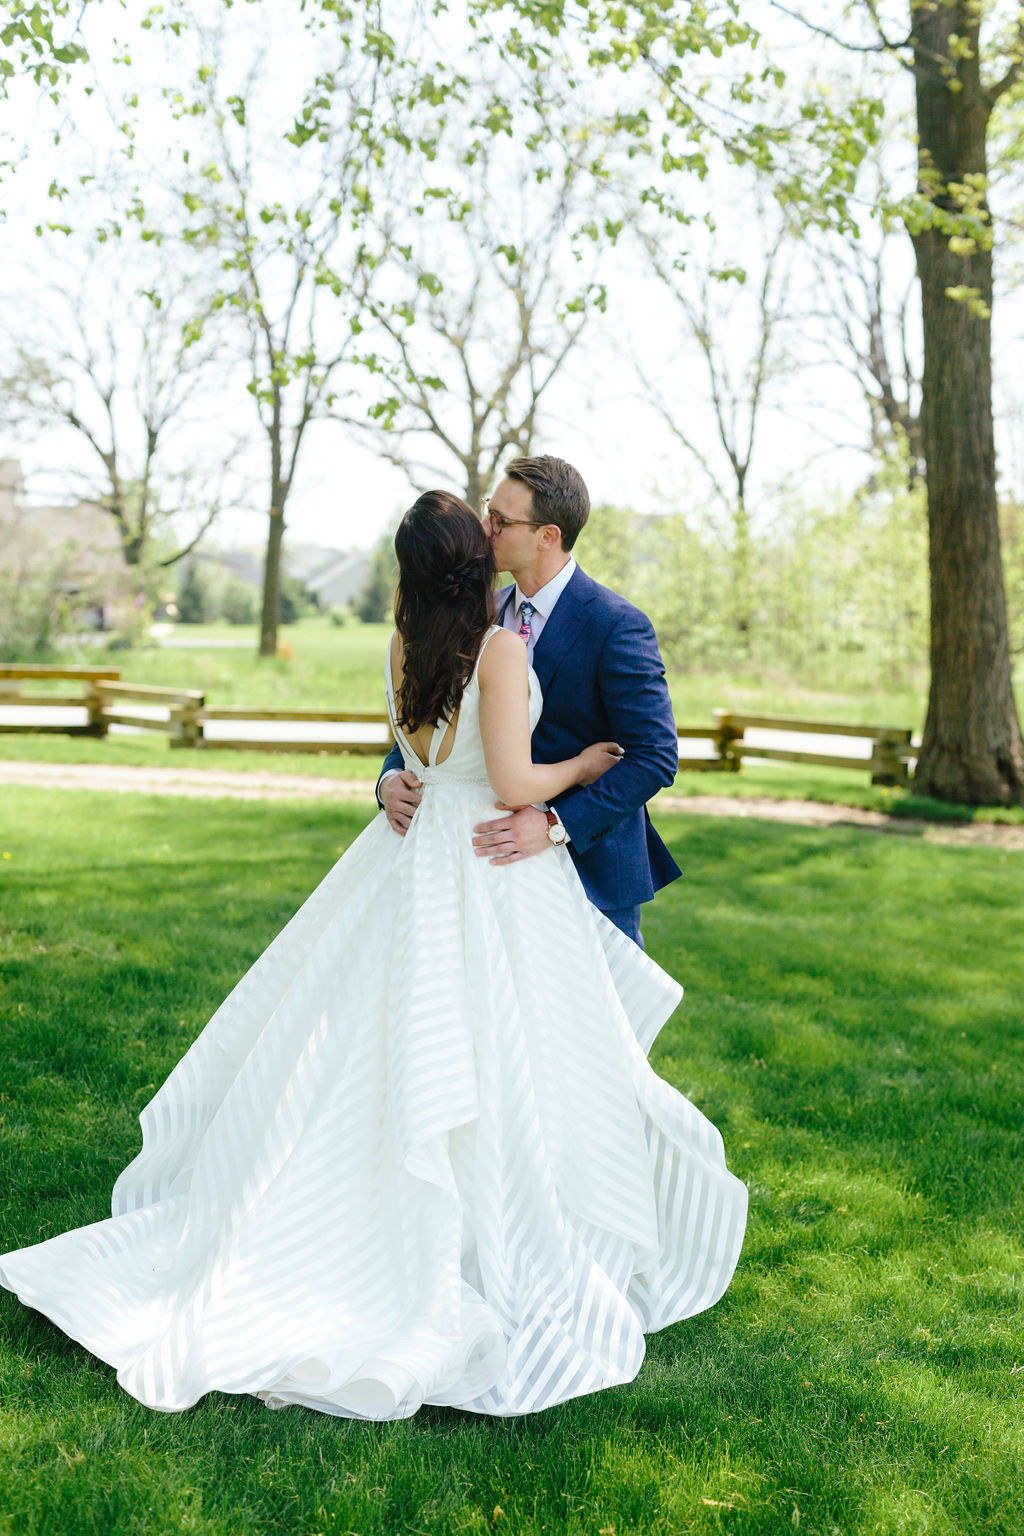 First look with a kiss on the cheek - Preppy spring wedding at Zingerman's Cornman Farms - Leah E. Moss Designs - photo by Katie Grace Photography